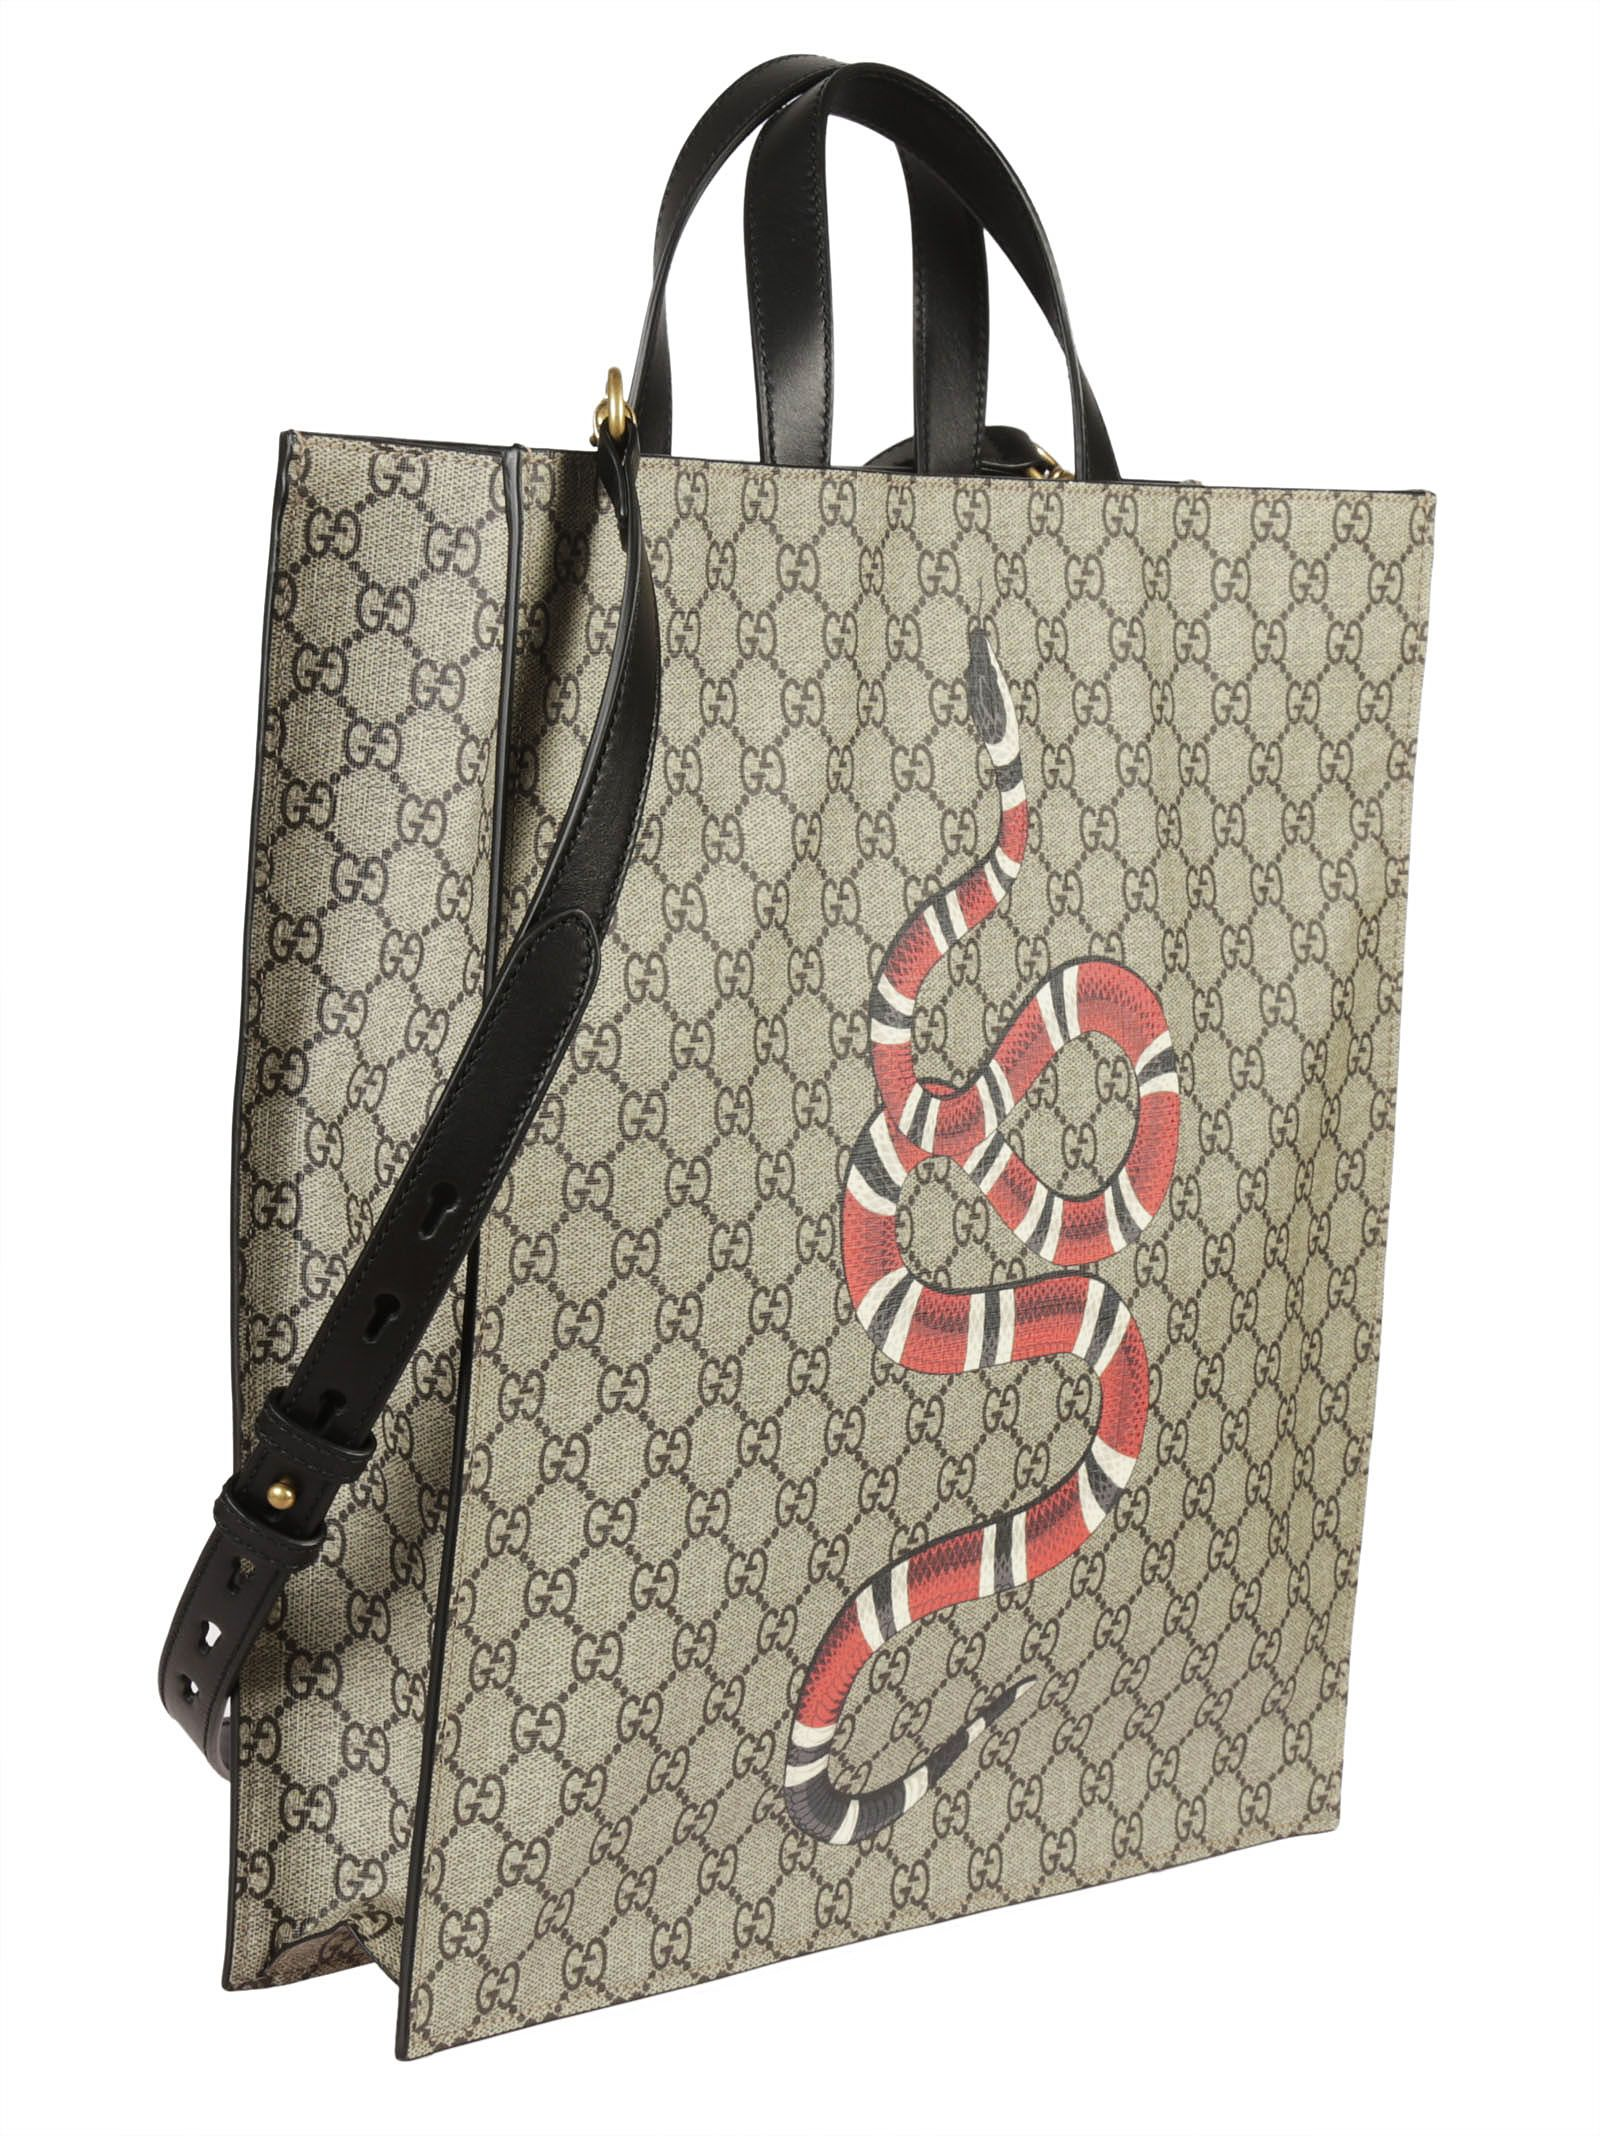 Gucci Bag With Snake